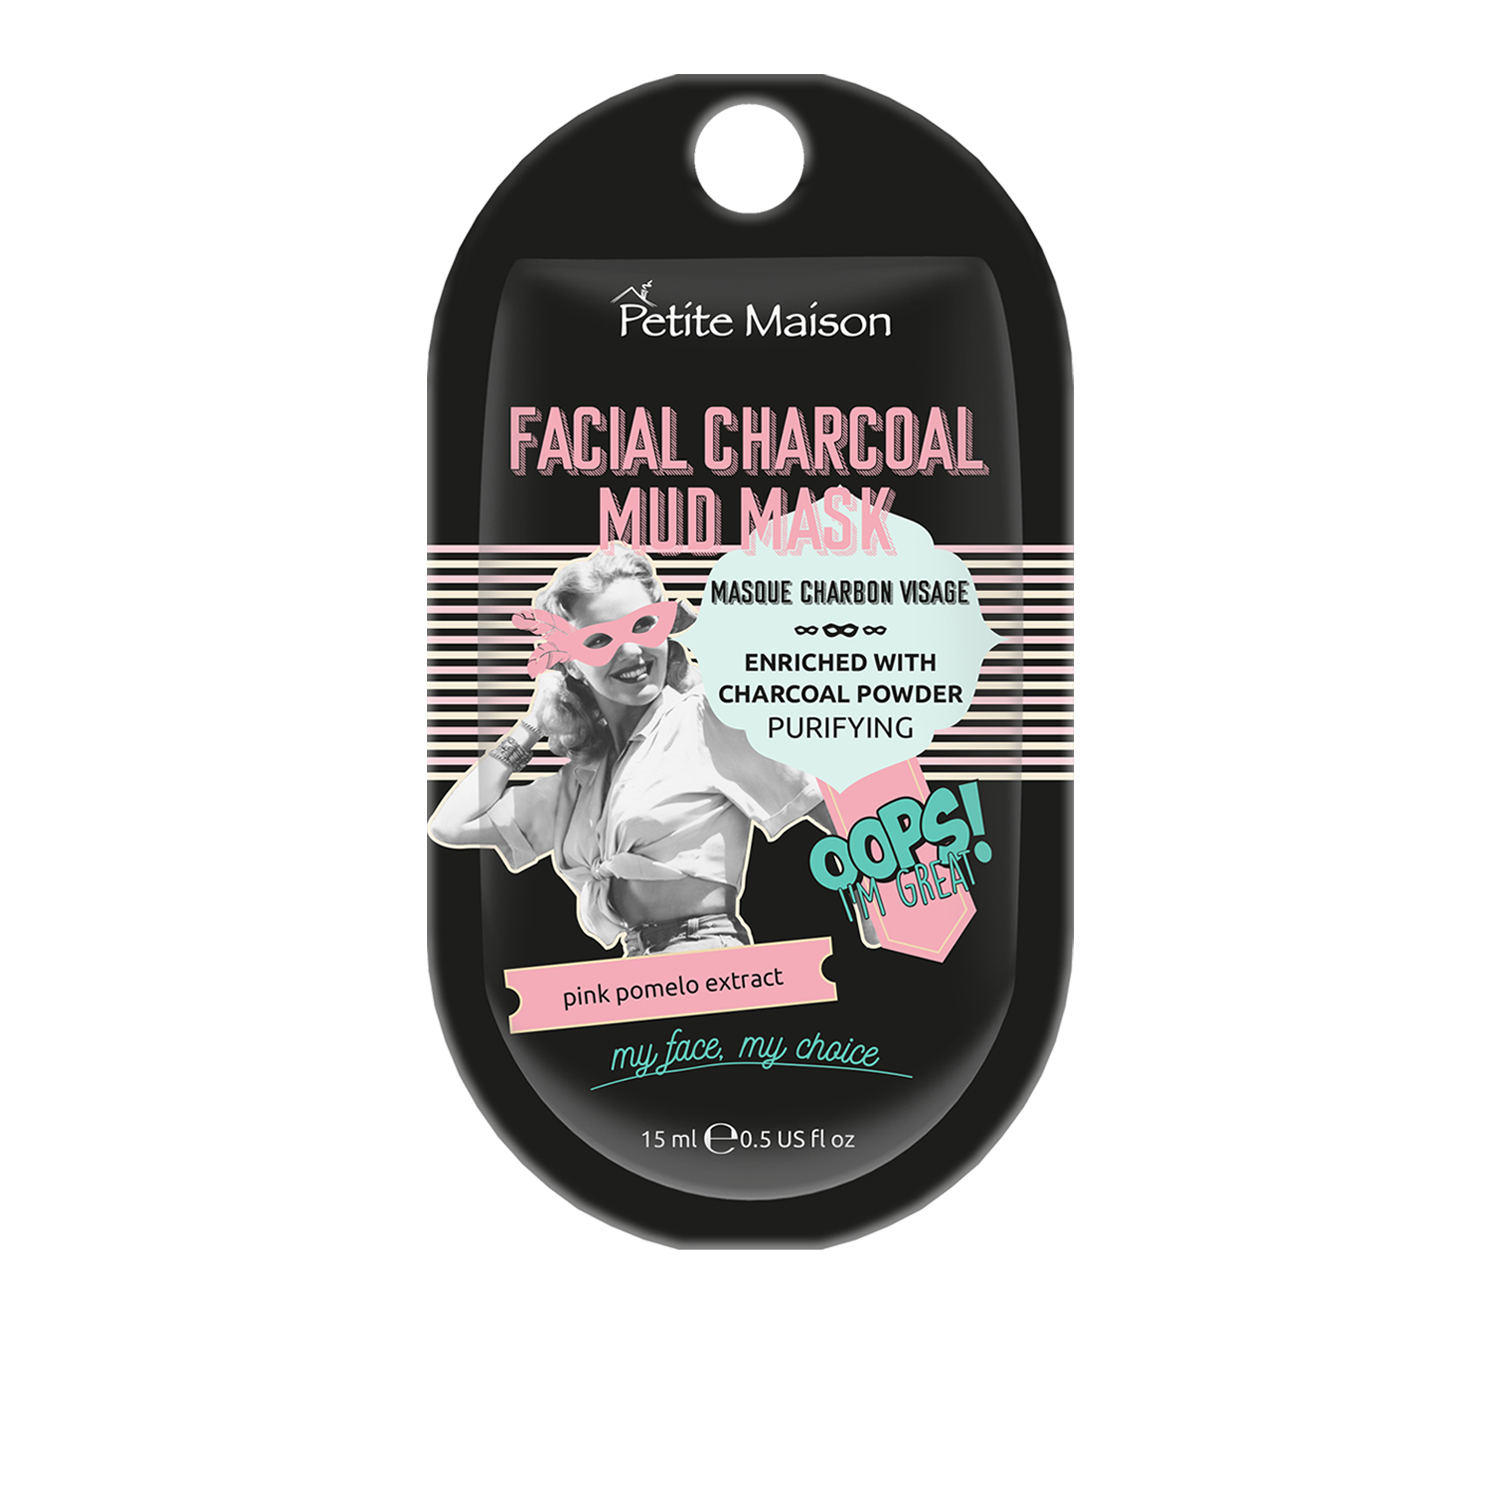 Petite Maison Facial Charcoal Mud Mask Mini